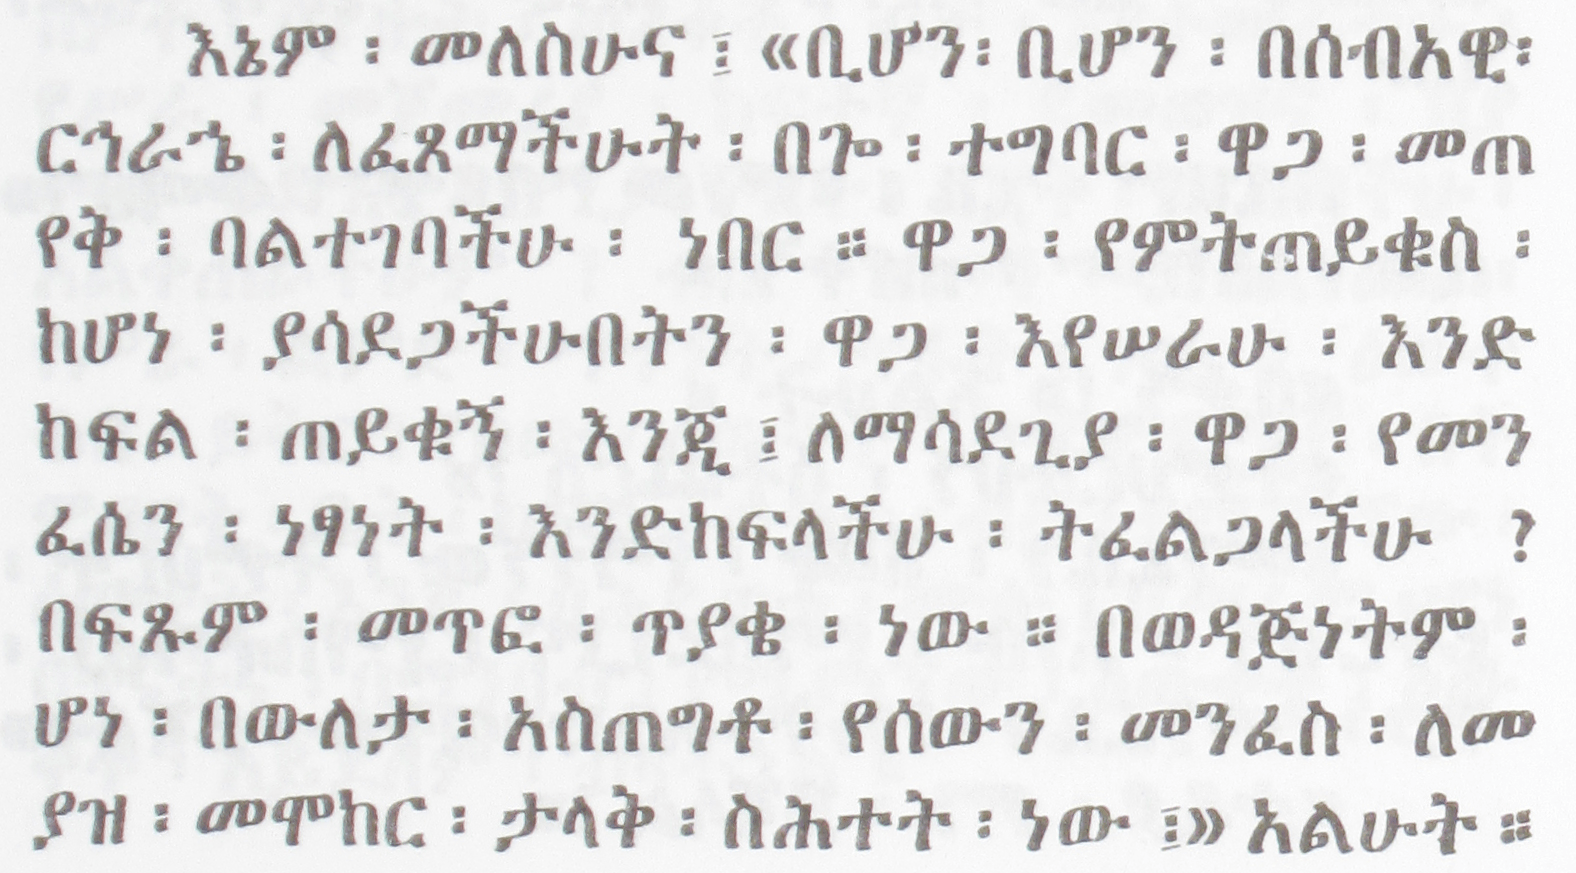 Ethiopic layout requirements 334 justification with centered wordspace and punctuation buycottarizona Choice Image